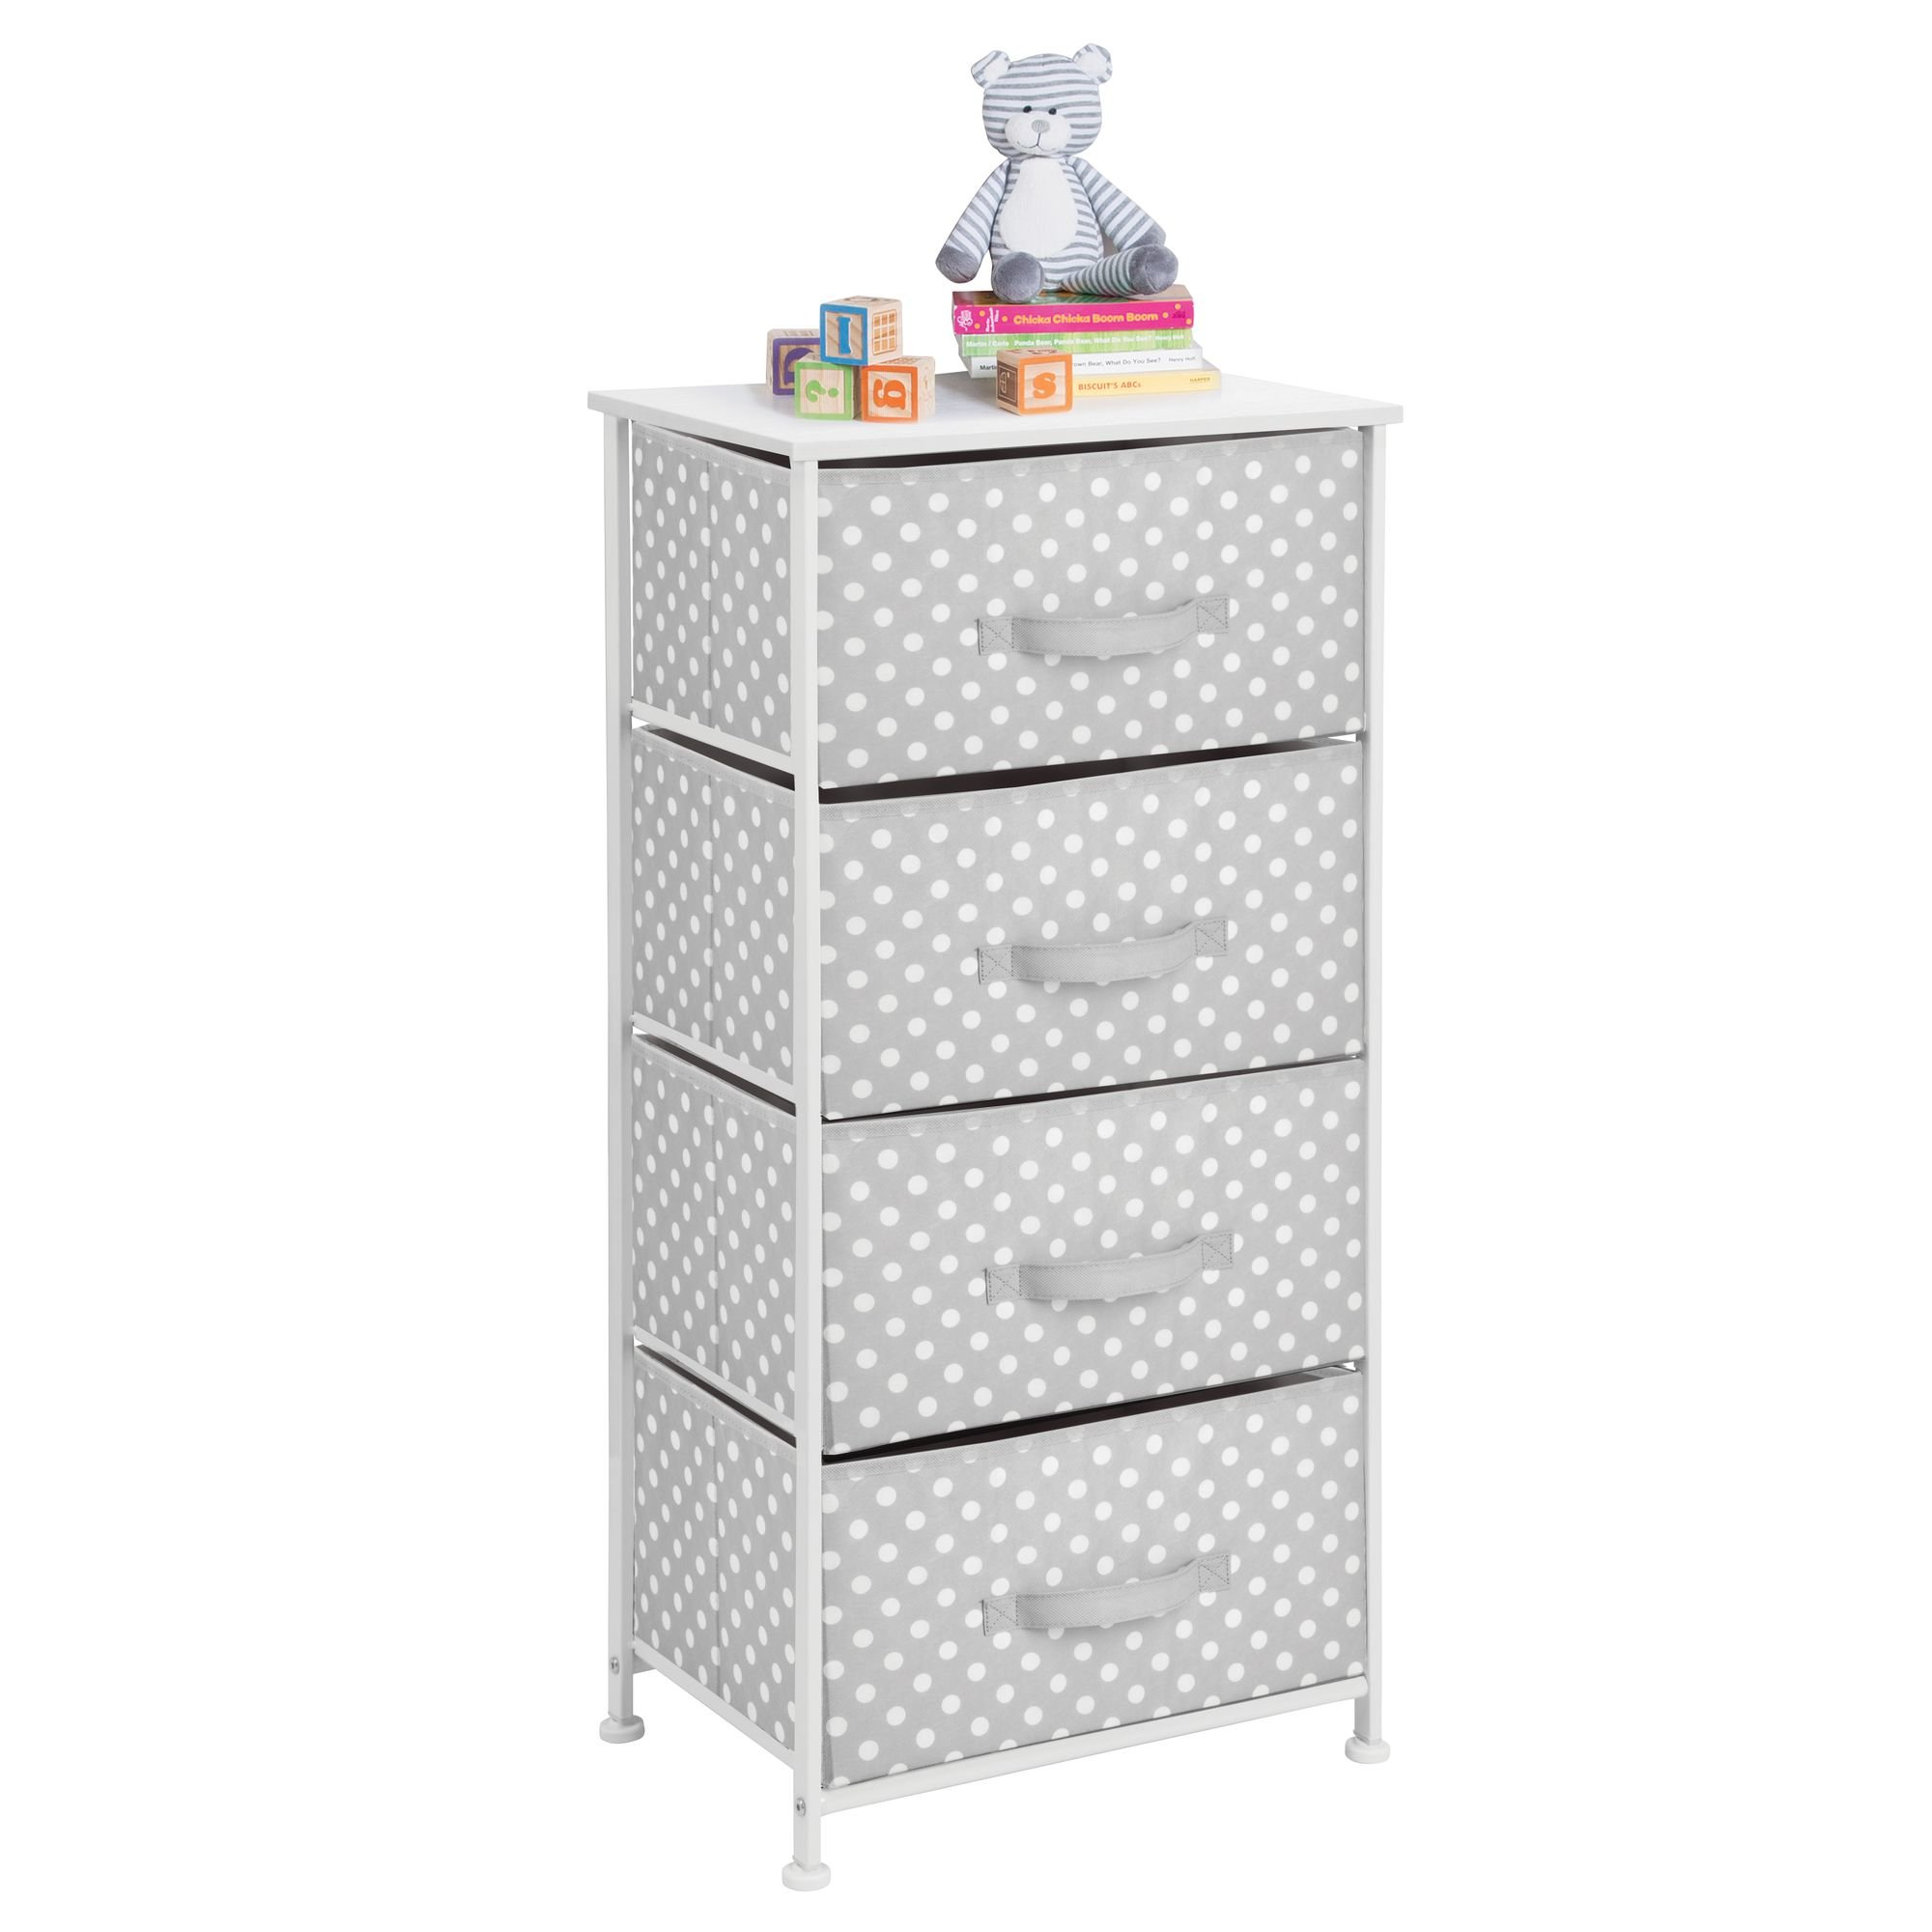 mDesign 4-Drawer Vertical Dresser Storage Tower - Sturdy Steel Frame, Wood Top and Easy Pull Fabric Bins - Multi-Bin Organizer Unit for Child/Kids Bedroom or Nursery - Light Gray with White Polka Dots by mDesign (Image #5)